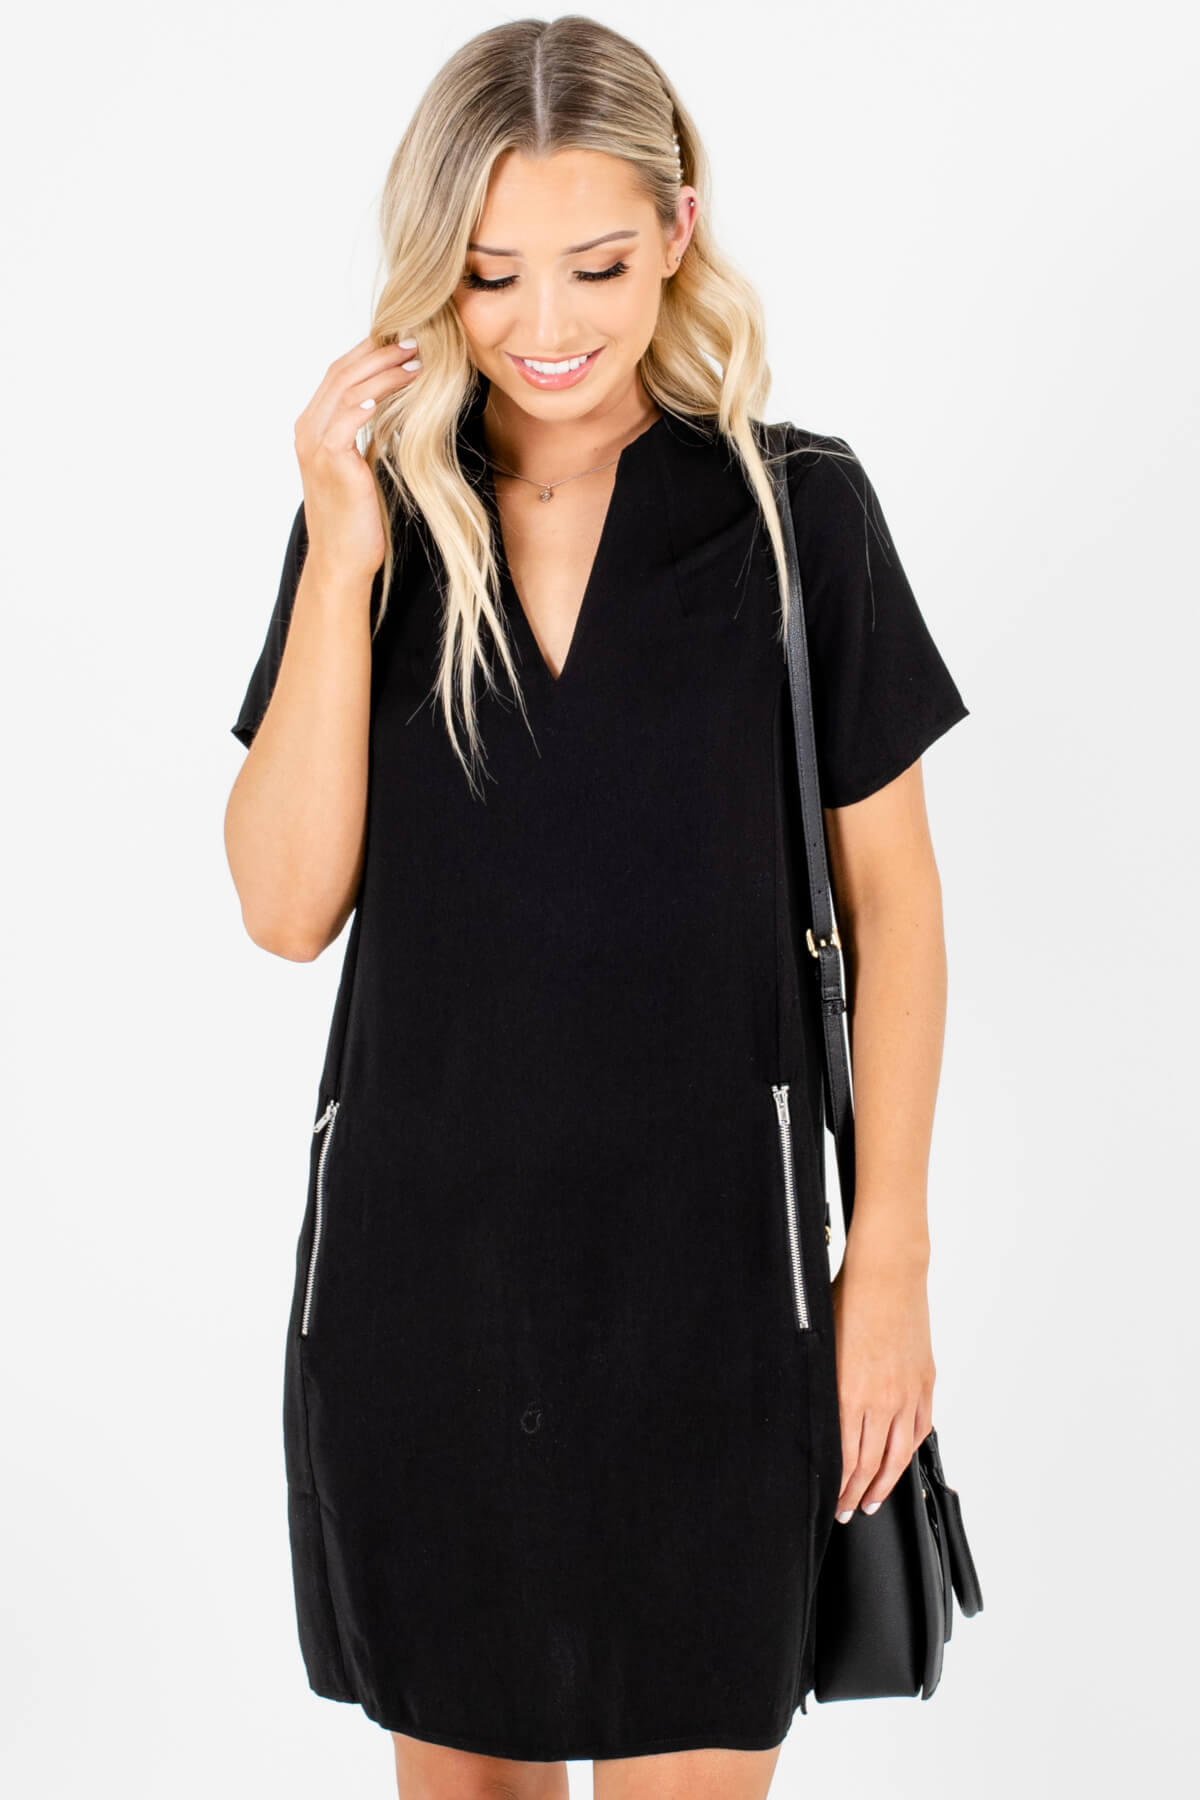 Black Business Casual Boutique Mini Dresses with Zipper Pockets